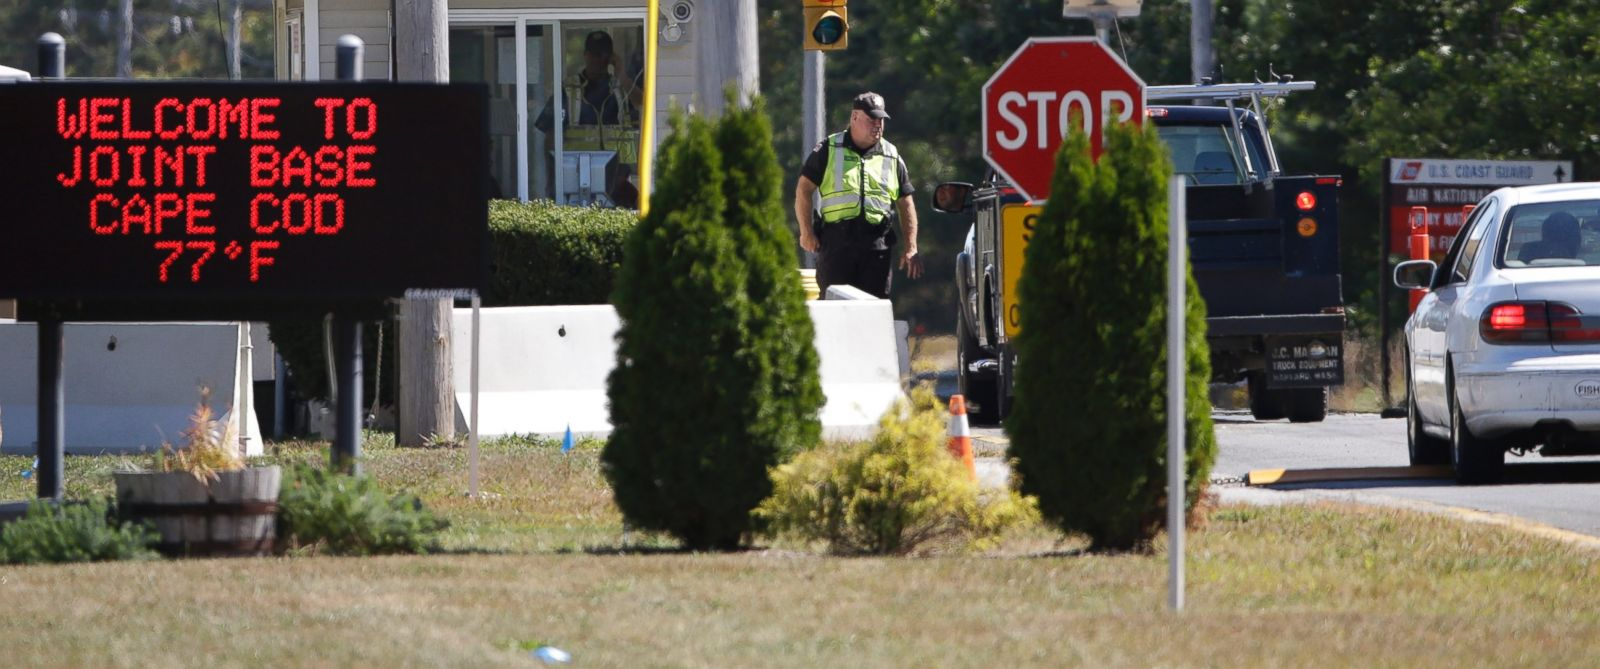 PHOTO: Vehicles are stopped by security personal as they enter a gate on Sept. 22, 2014, to Camp Edwards, Mass., on Cape Cod.